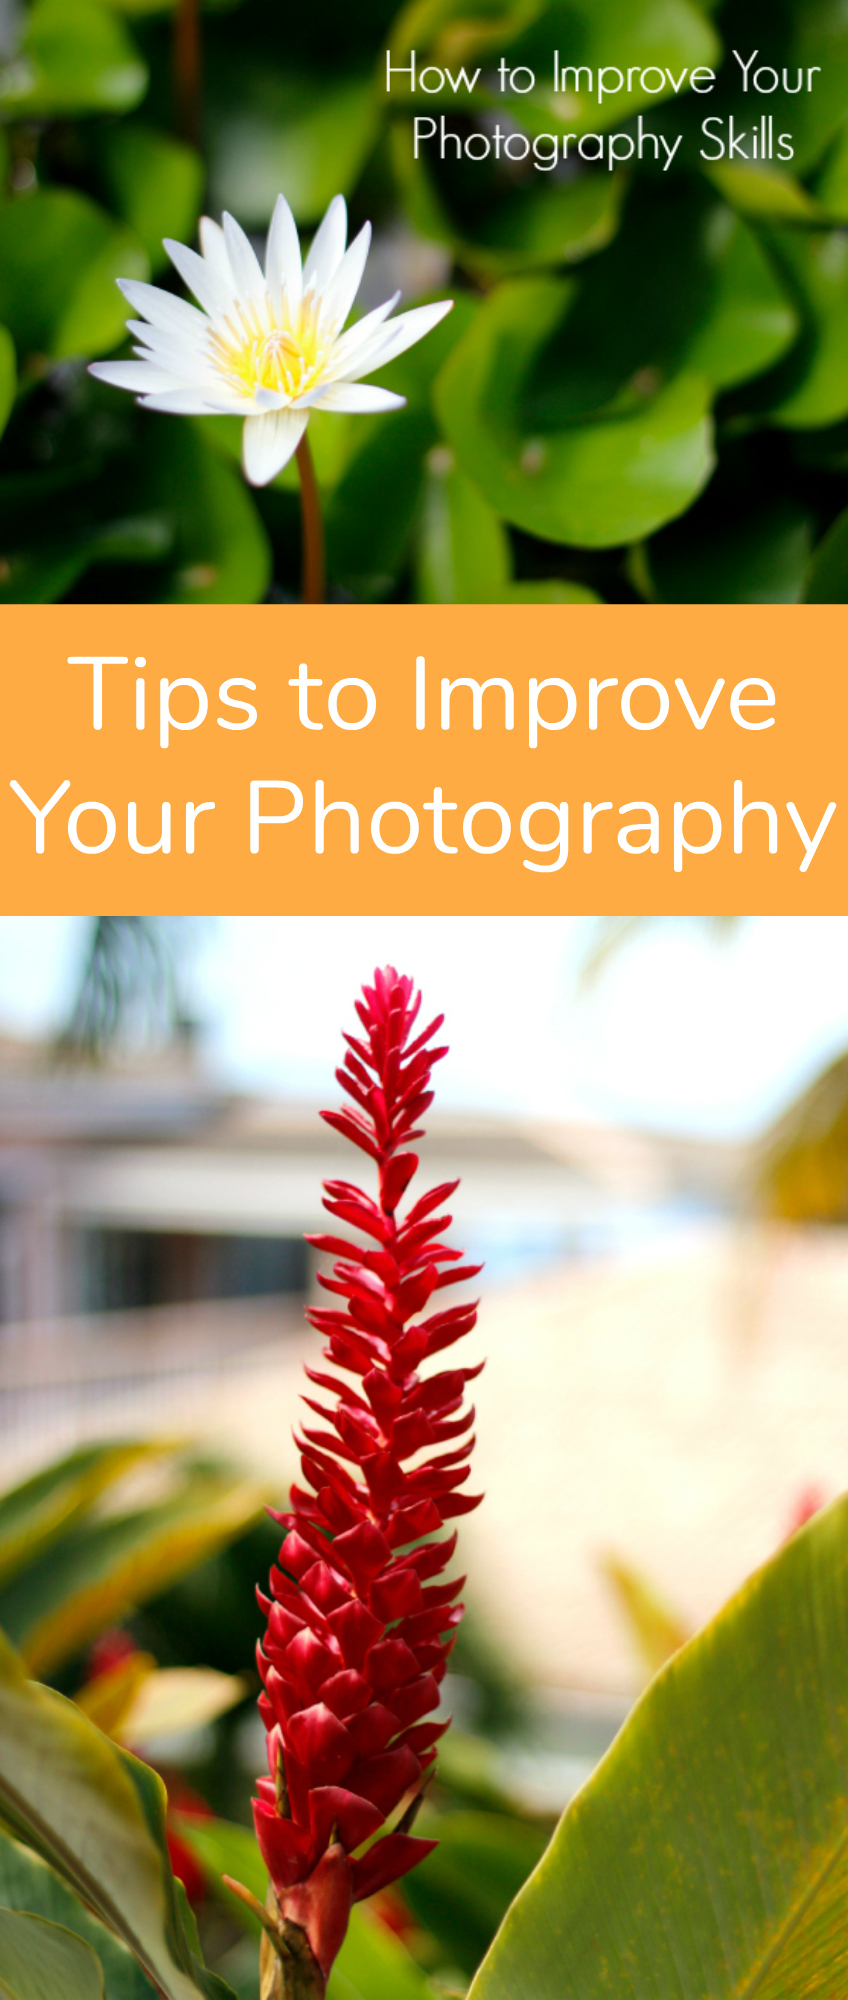 Tips to Improve Your Photography